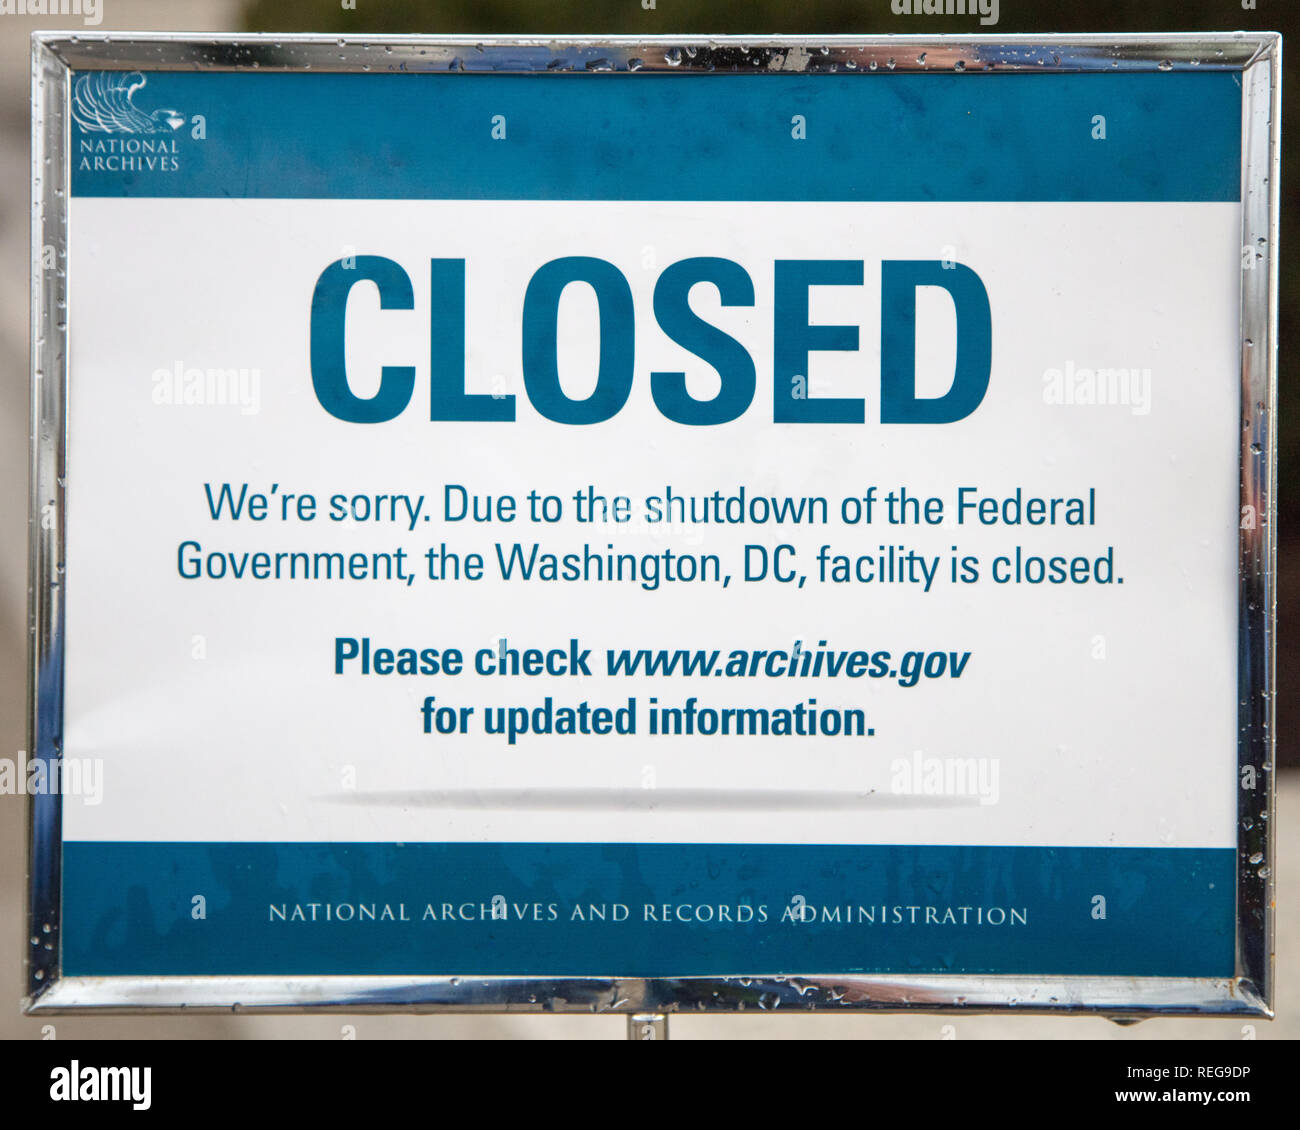 Washington DC, USA  20th Jan 2019  National Archives shut